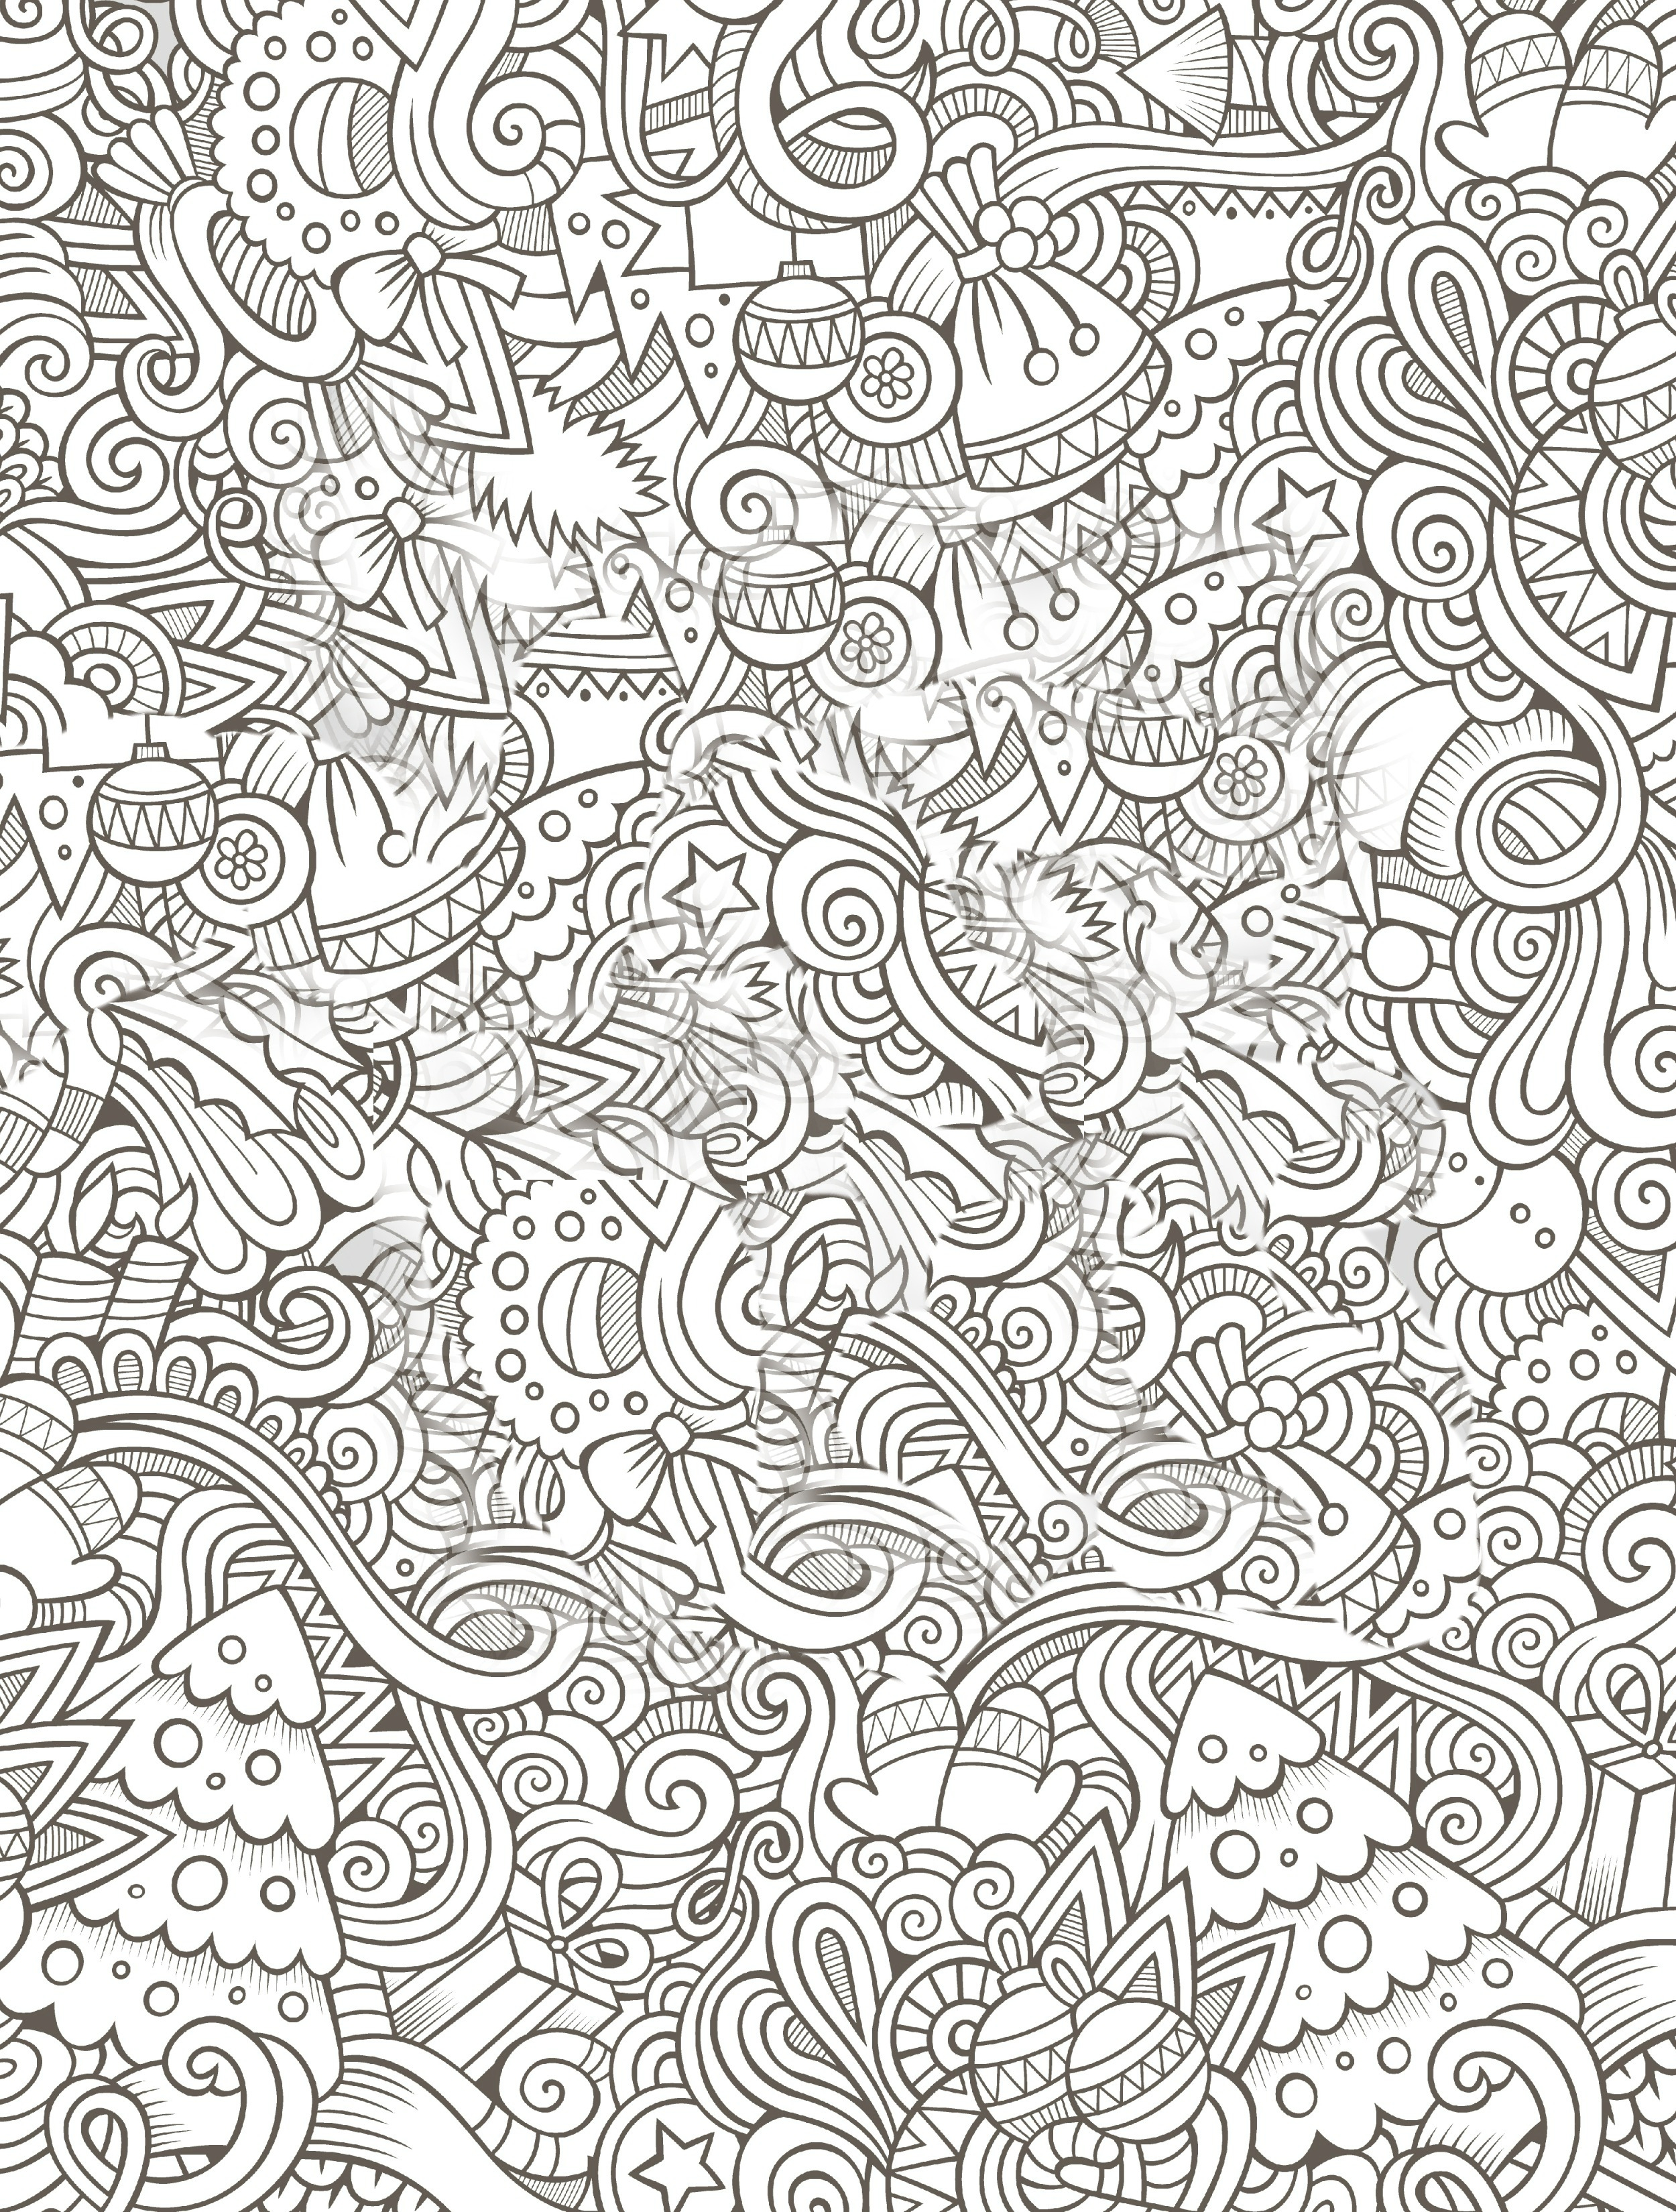 Coloring Pages : Free Printable Holiday Adult Coloring Pages Books - Free Printable Coloring Pages For Adults